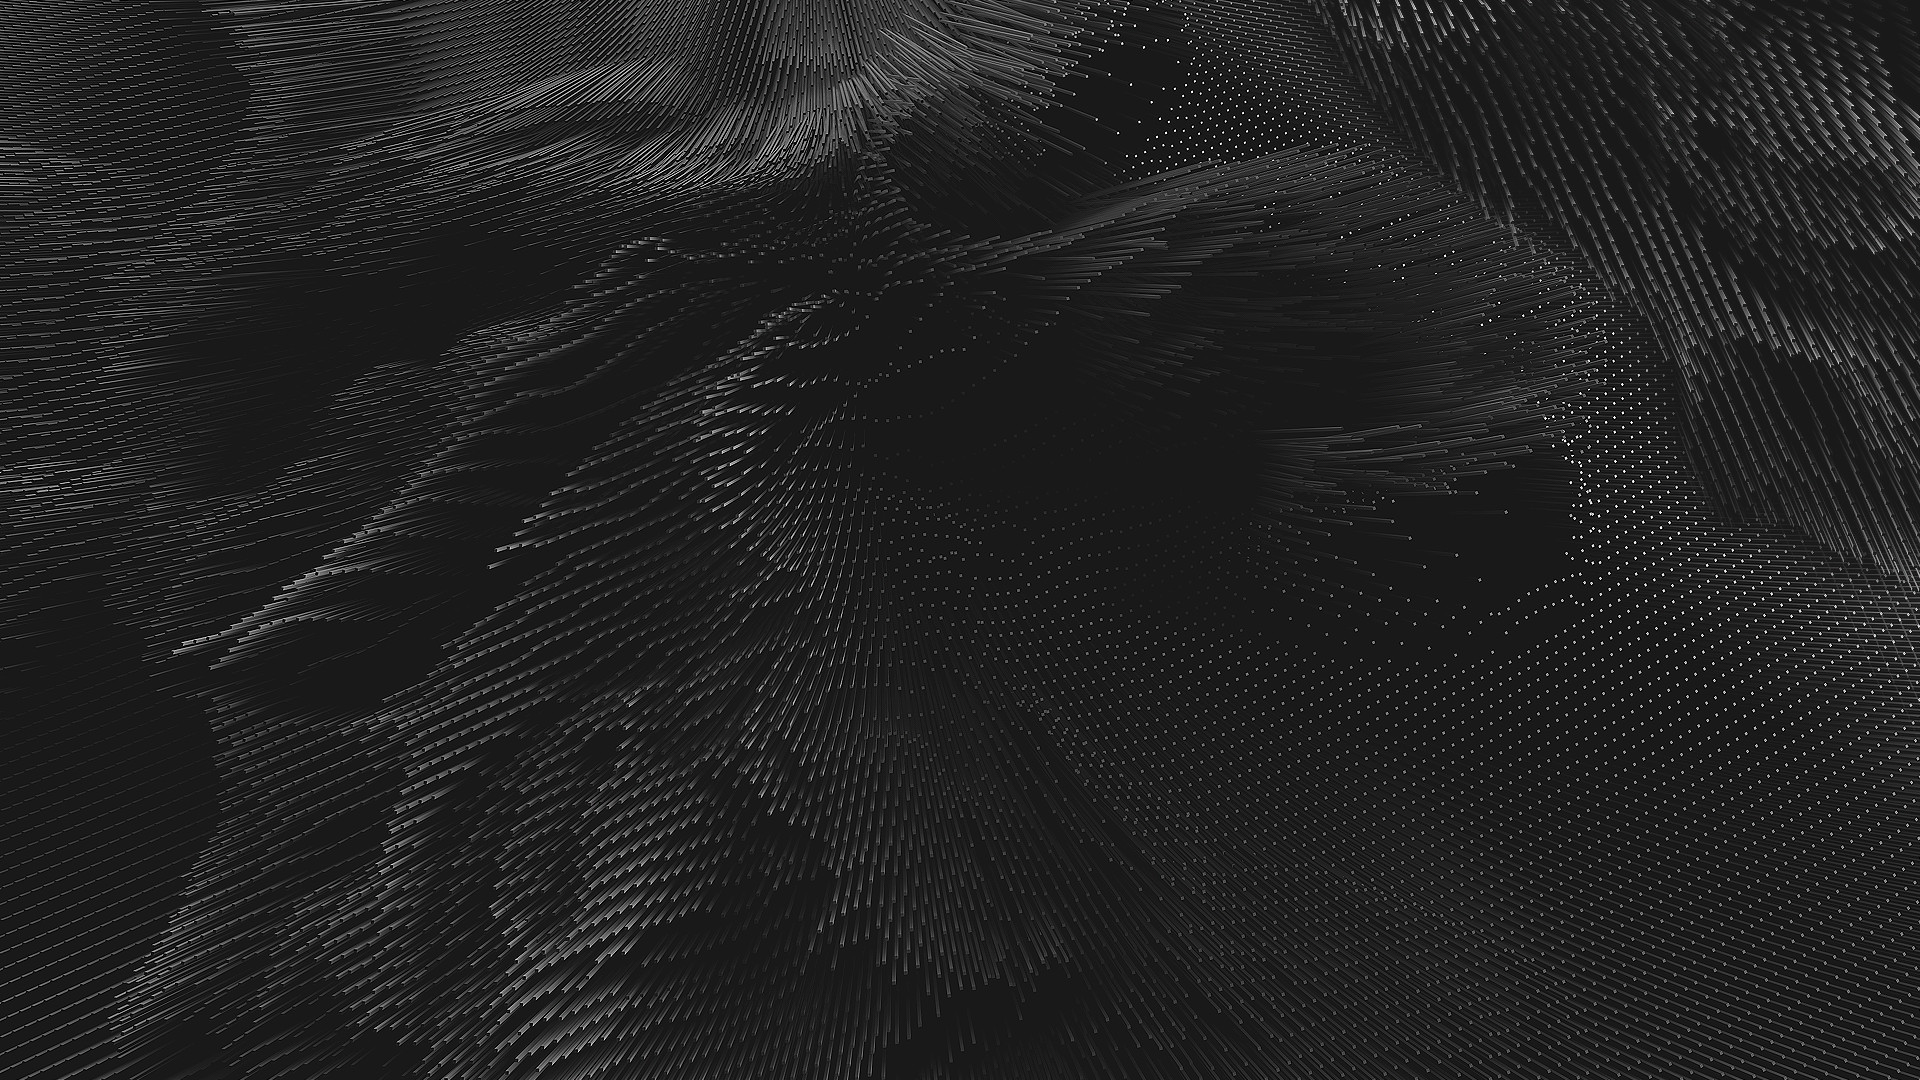 iphone 6 carbon fiber wallpaper (76+ images)